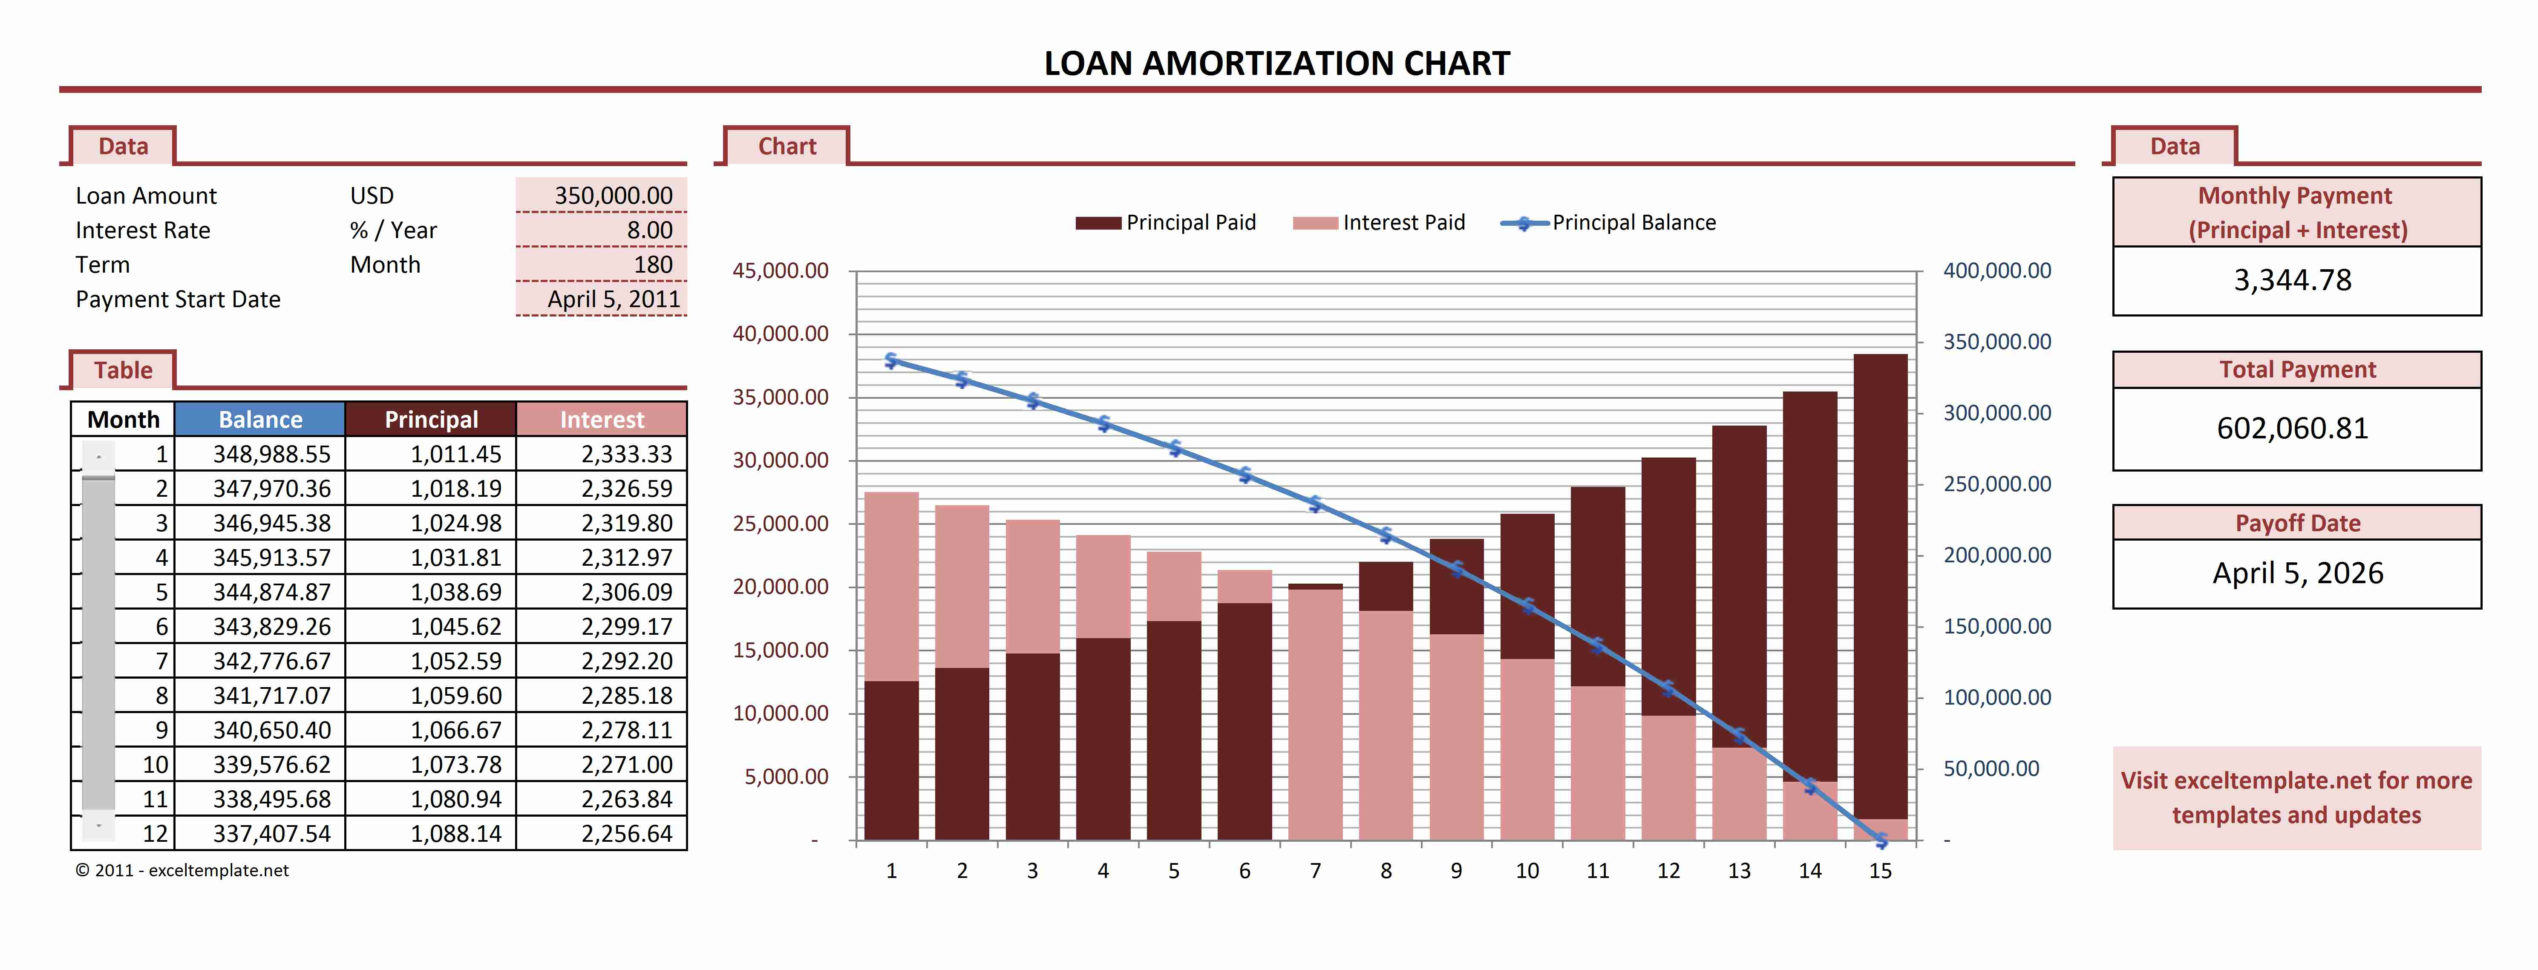 Mortgage Payment Spreadsheet Excel Throughout Amortization Spreadsheet Excel Schedule Template Download India Loan